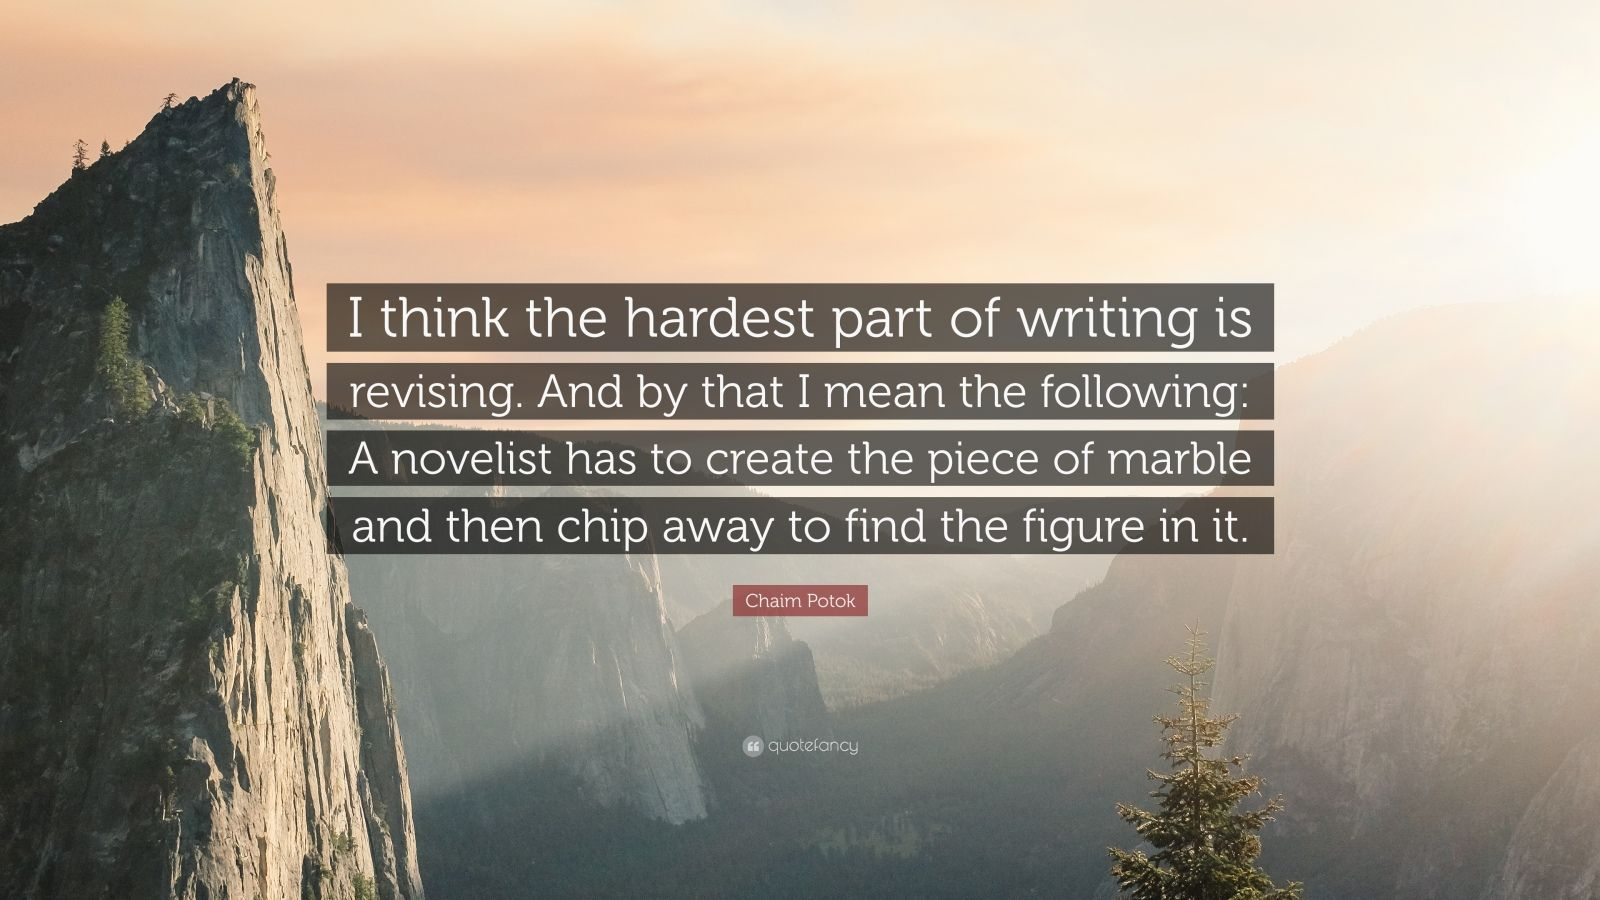 Top Wallpaper Marble Writing - 1059323-Chaim-Potok-Quote-I-think-the-hardest-part-of-writing-is-revising  Image_85665.jpg